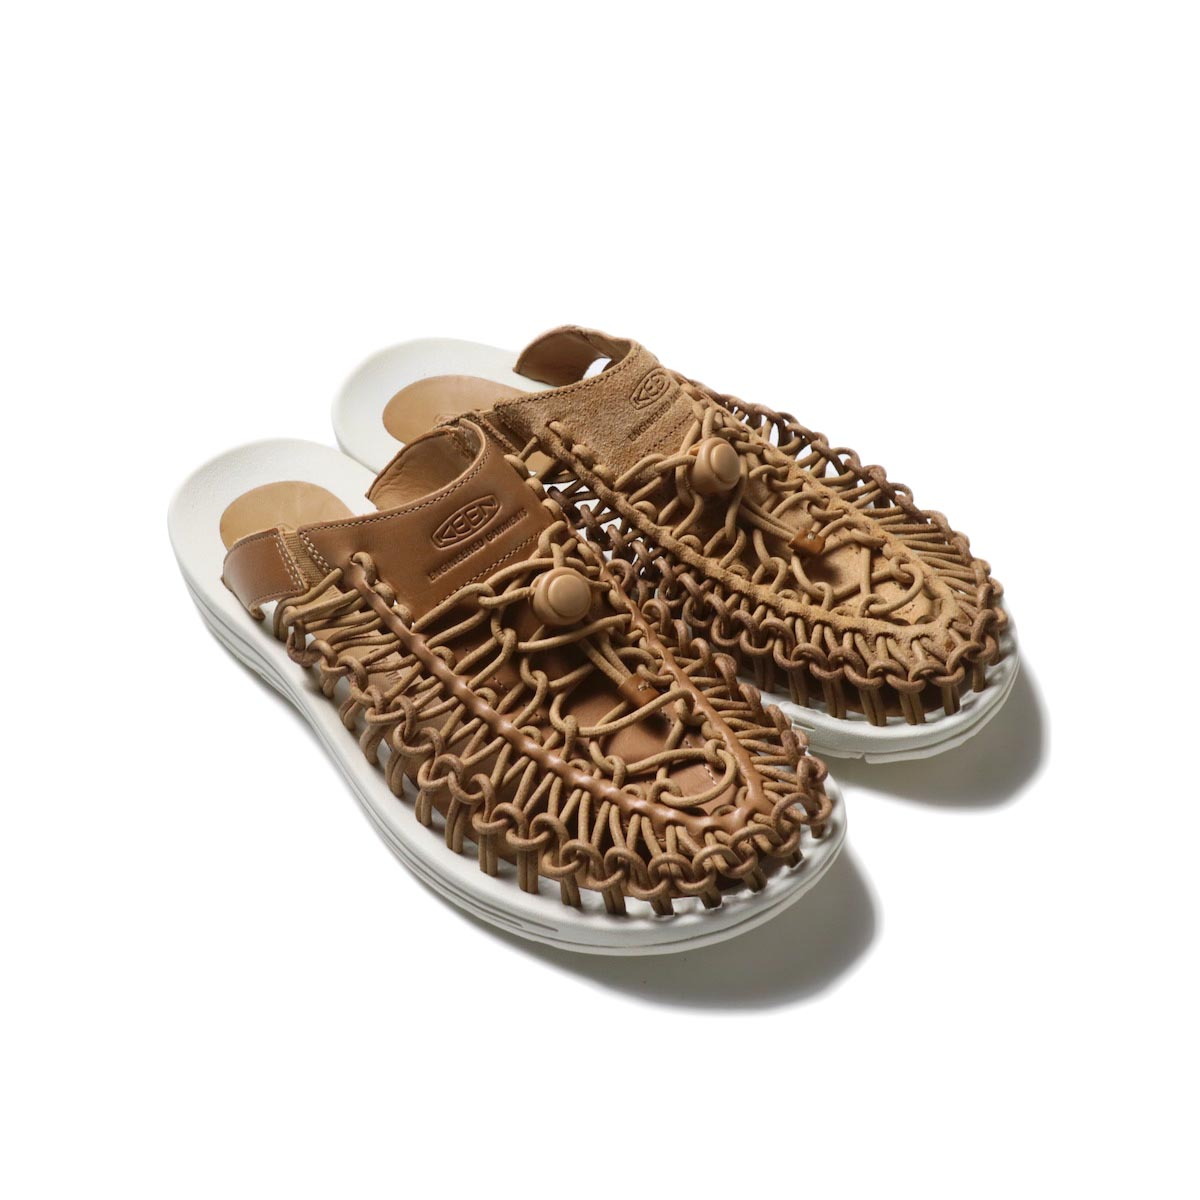 【予約商品】Engineered Garments × KEEN / UNEEK SLIDE (Cookie Dough)